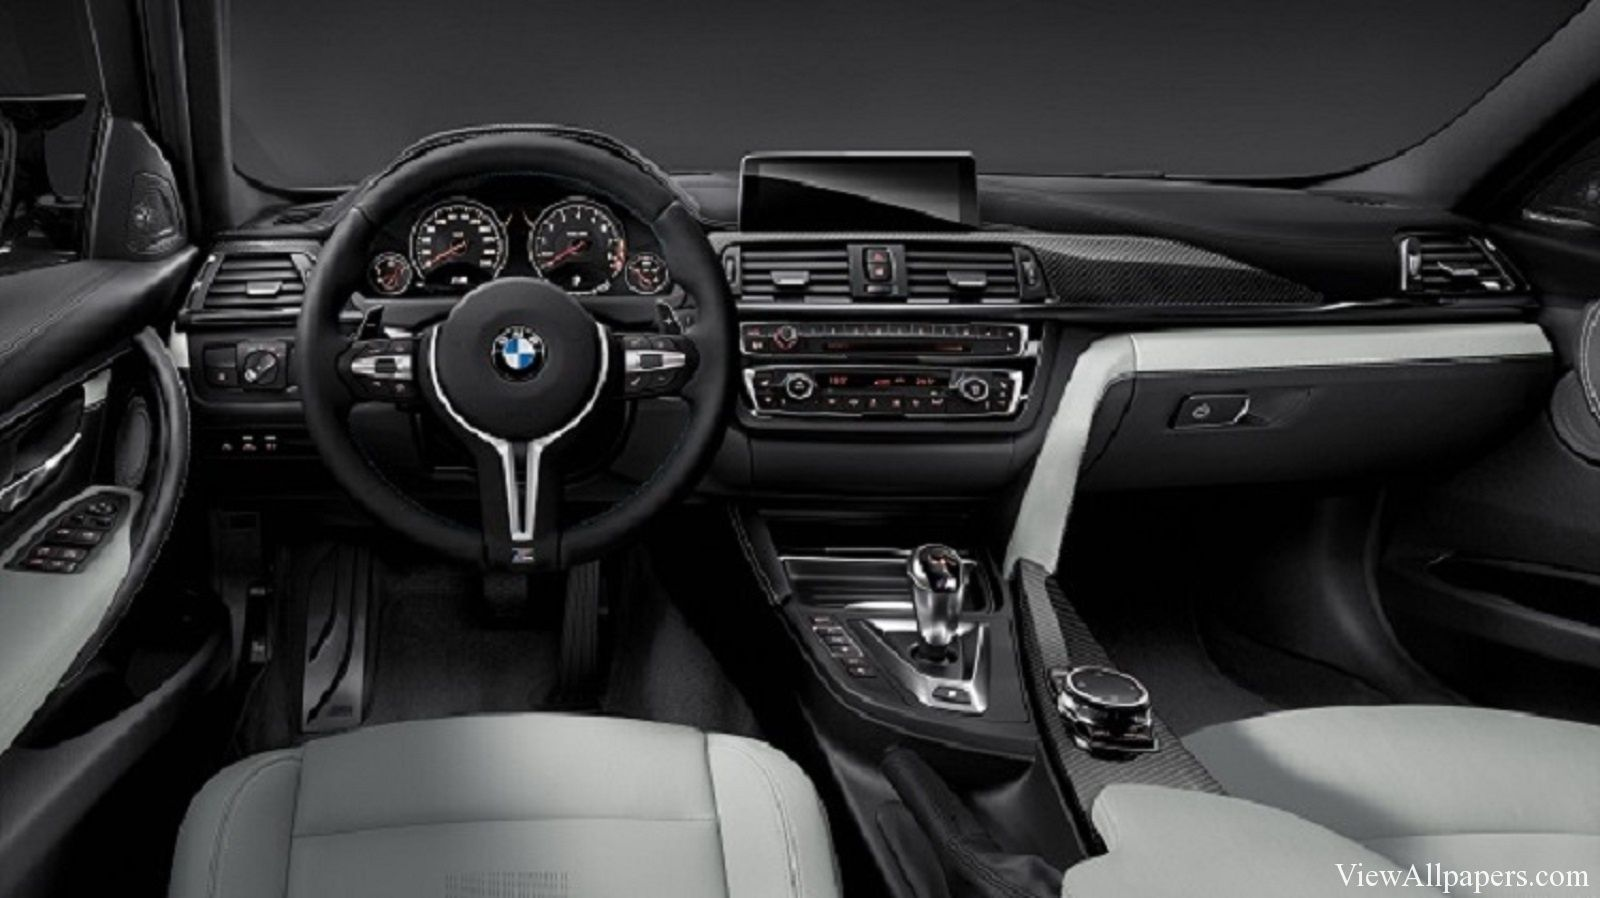 2016 Bmw 3 Series Interior Cars Bmw M3 Sedan 2015 Bmw M3 M3 Sedan